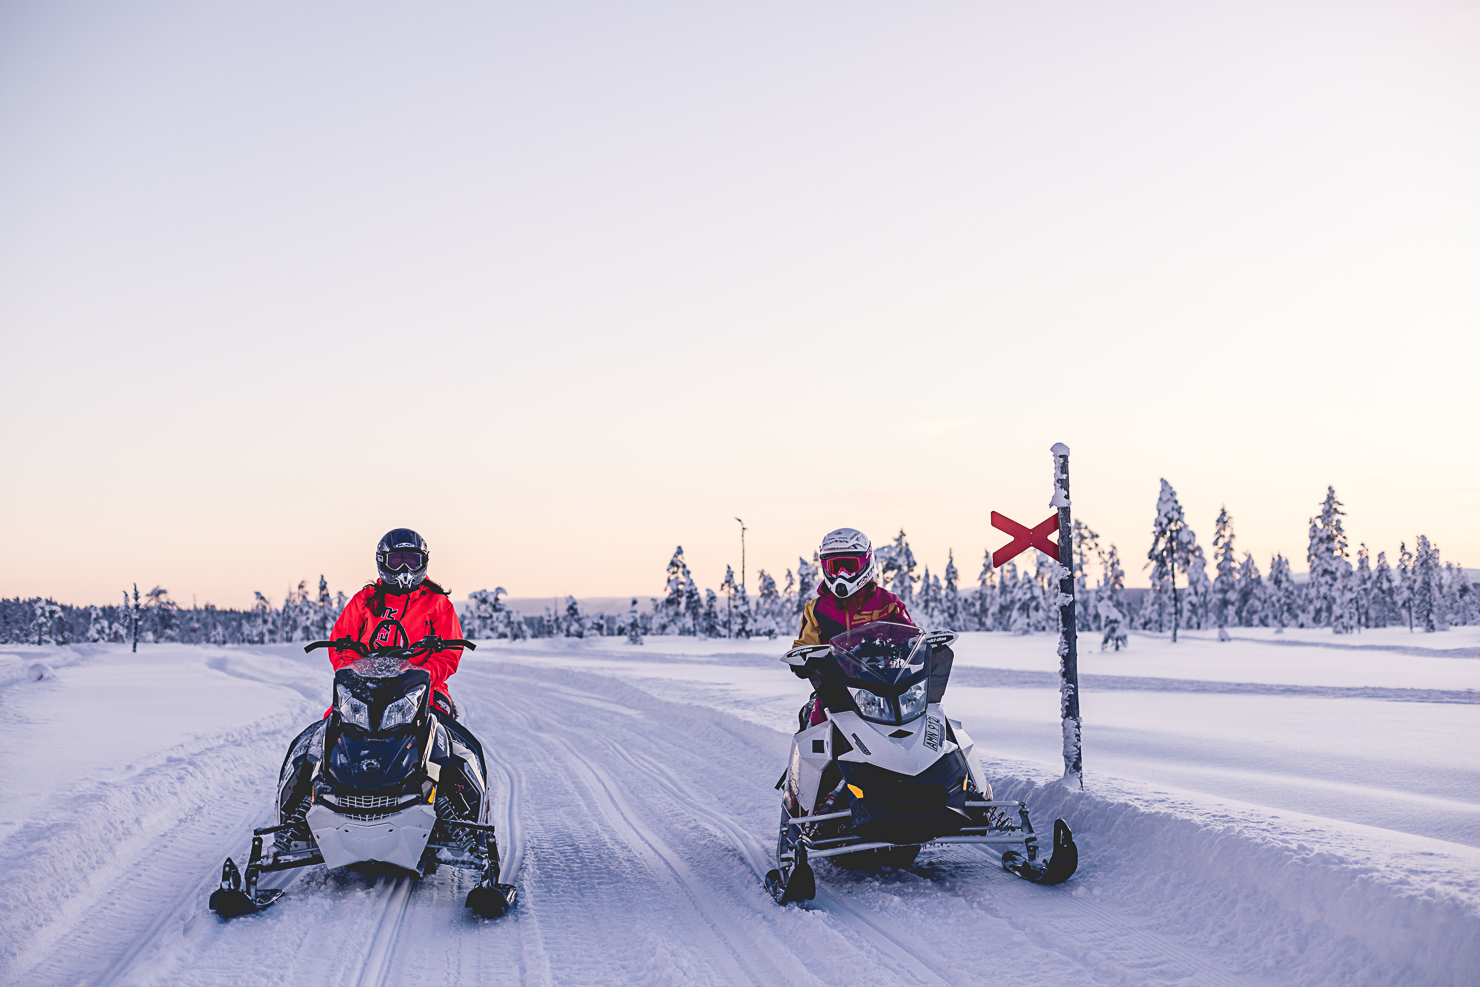 A day on the snowmobiles